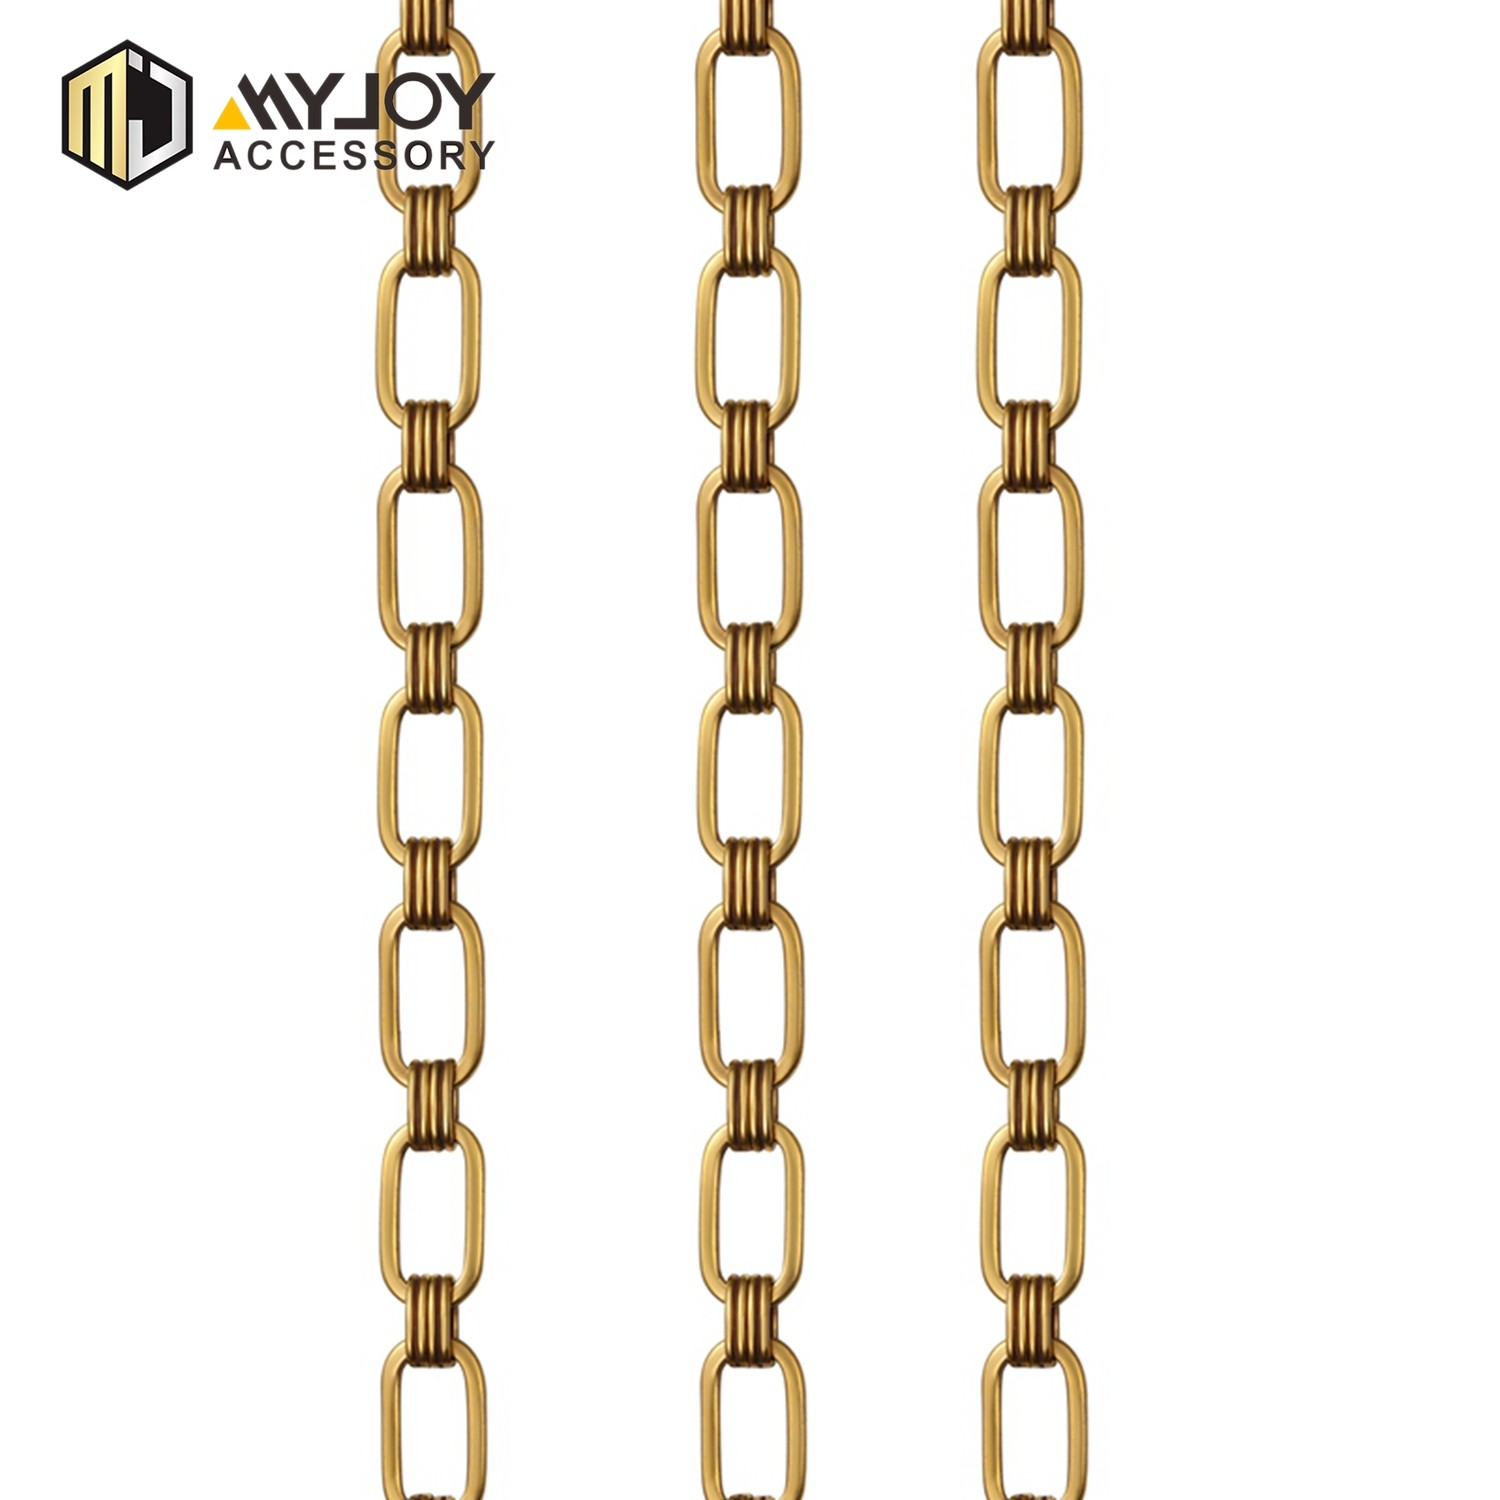 MYJOY New chain strap factory for handbag-2